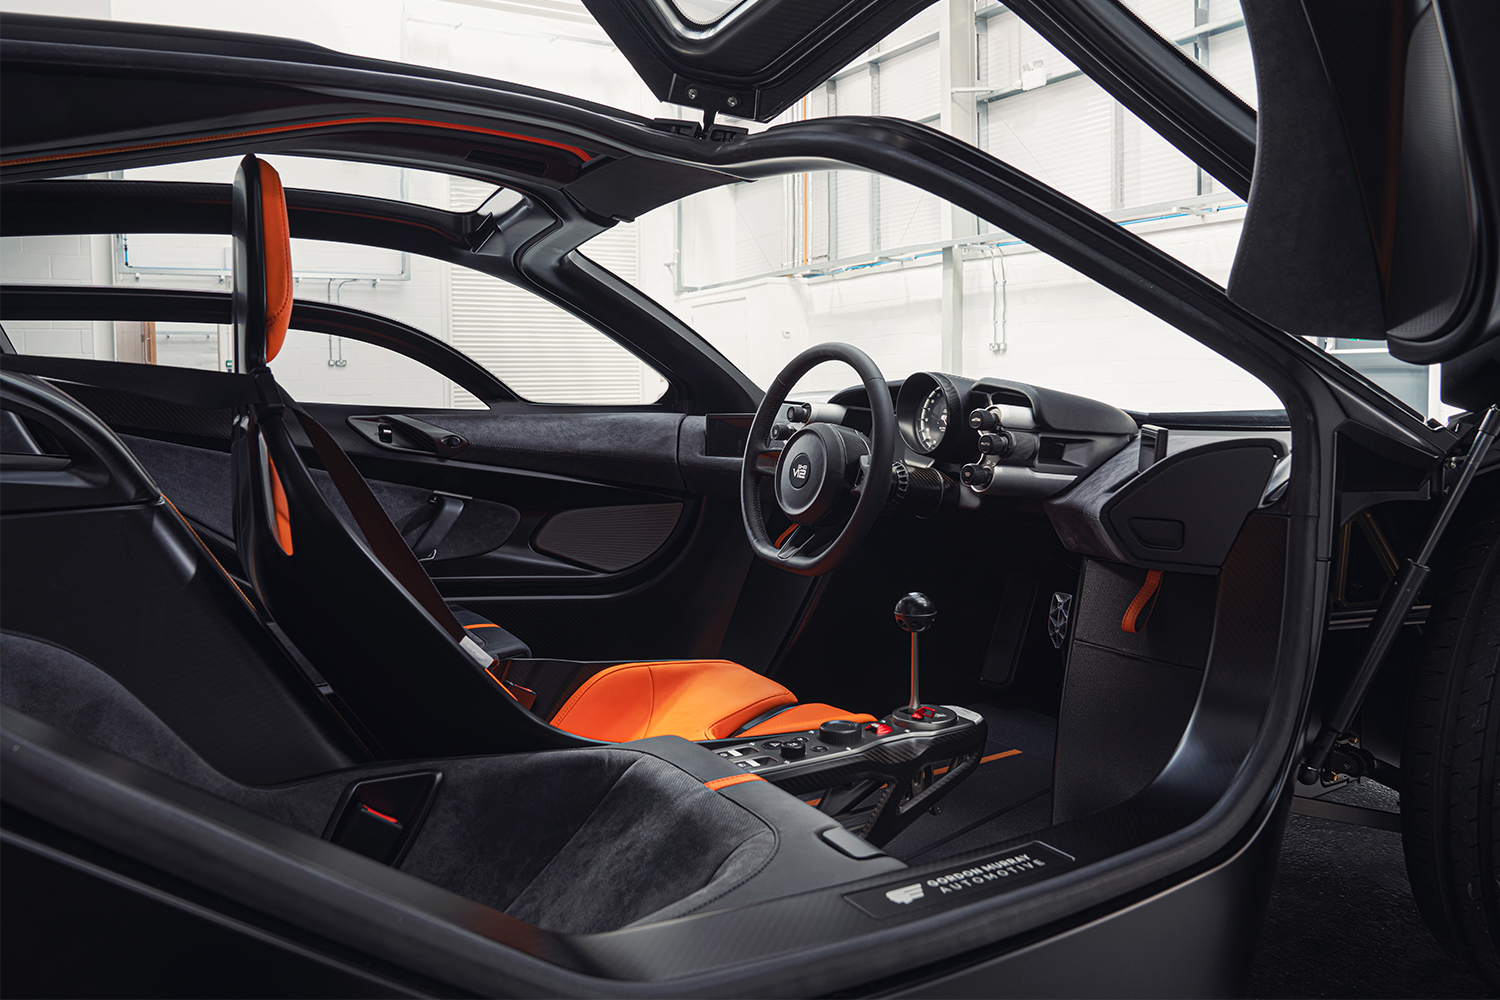 Gordon Murray Automotive T.50 Supercar Interior